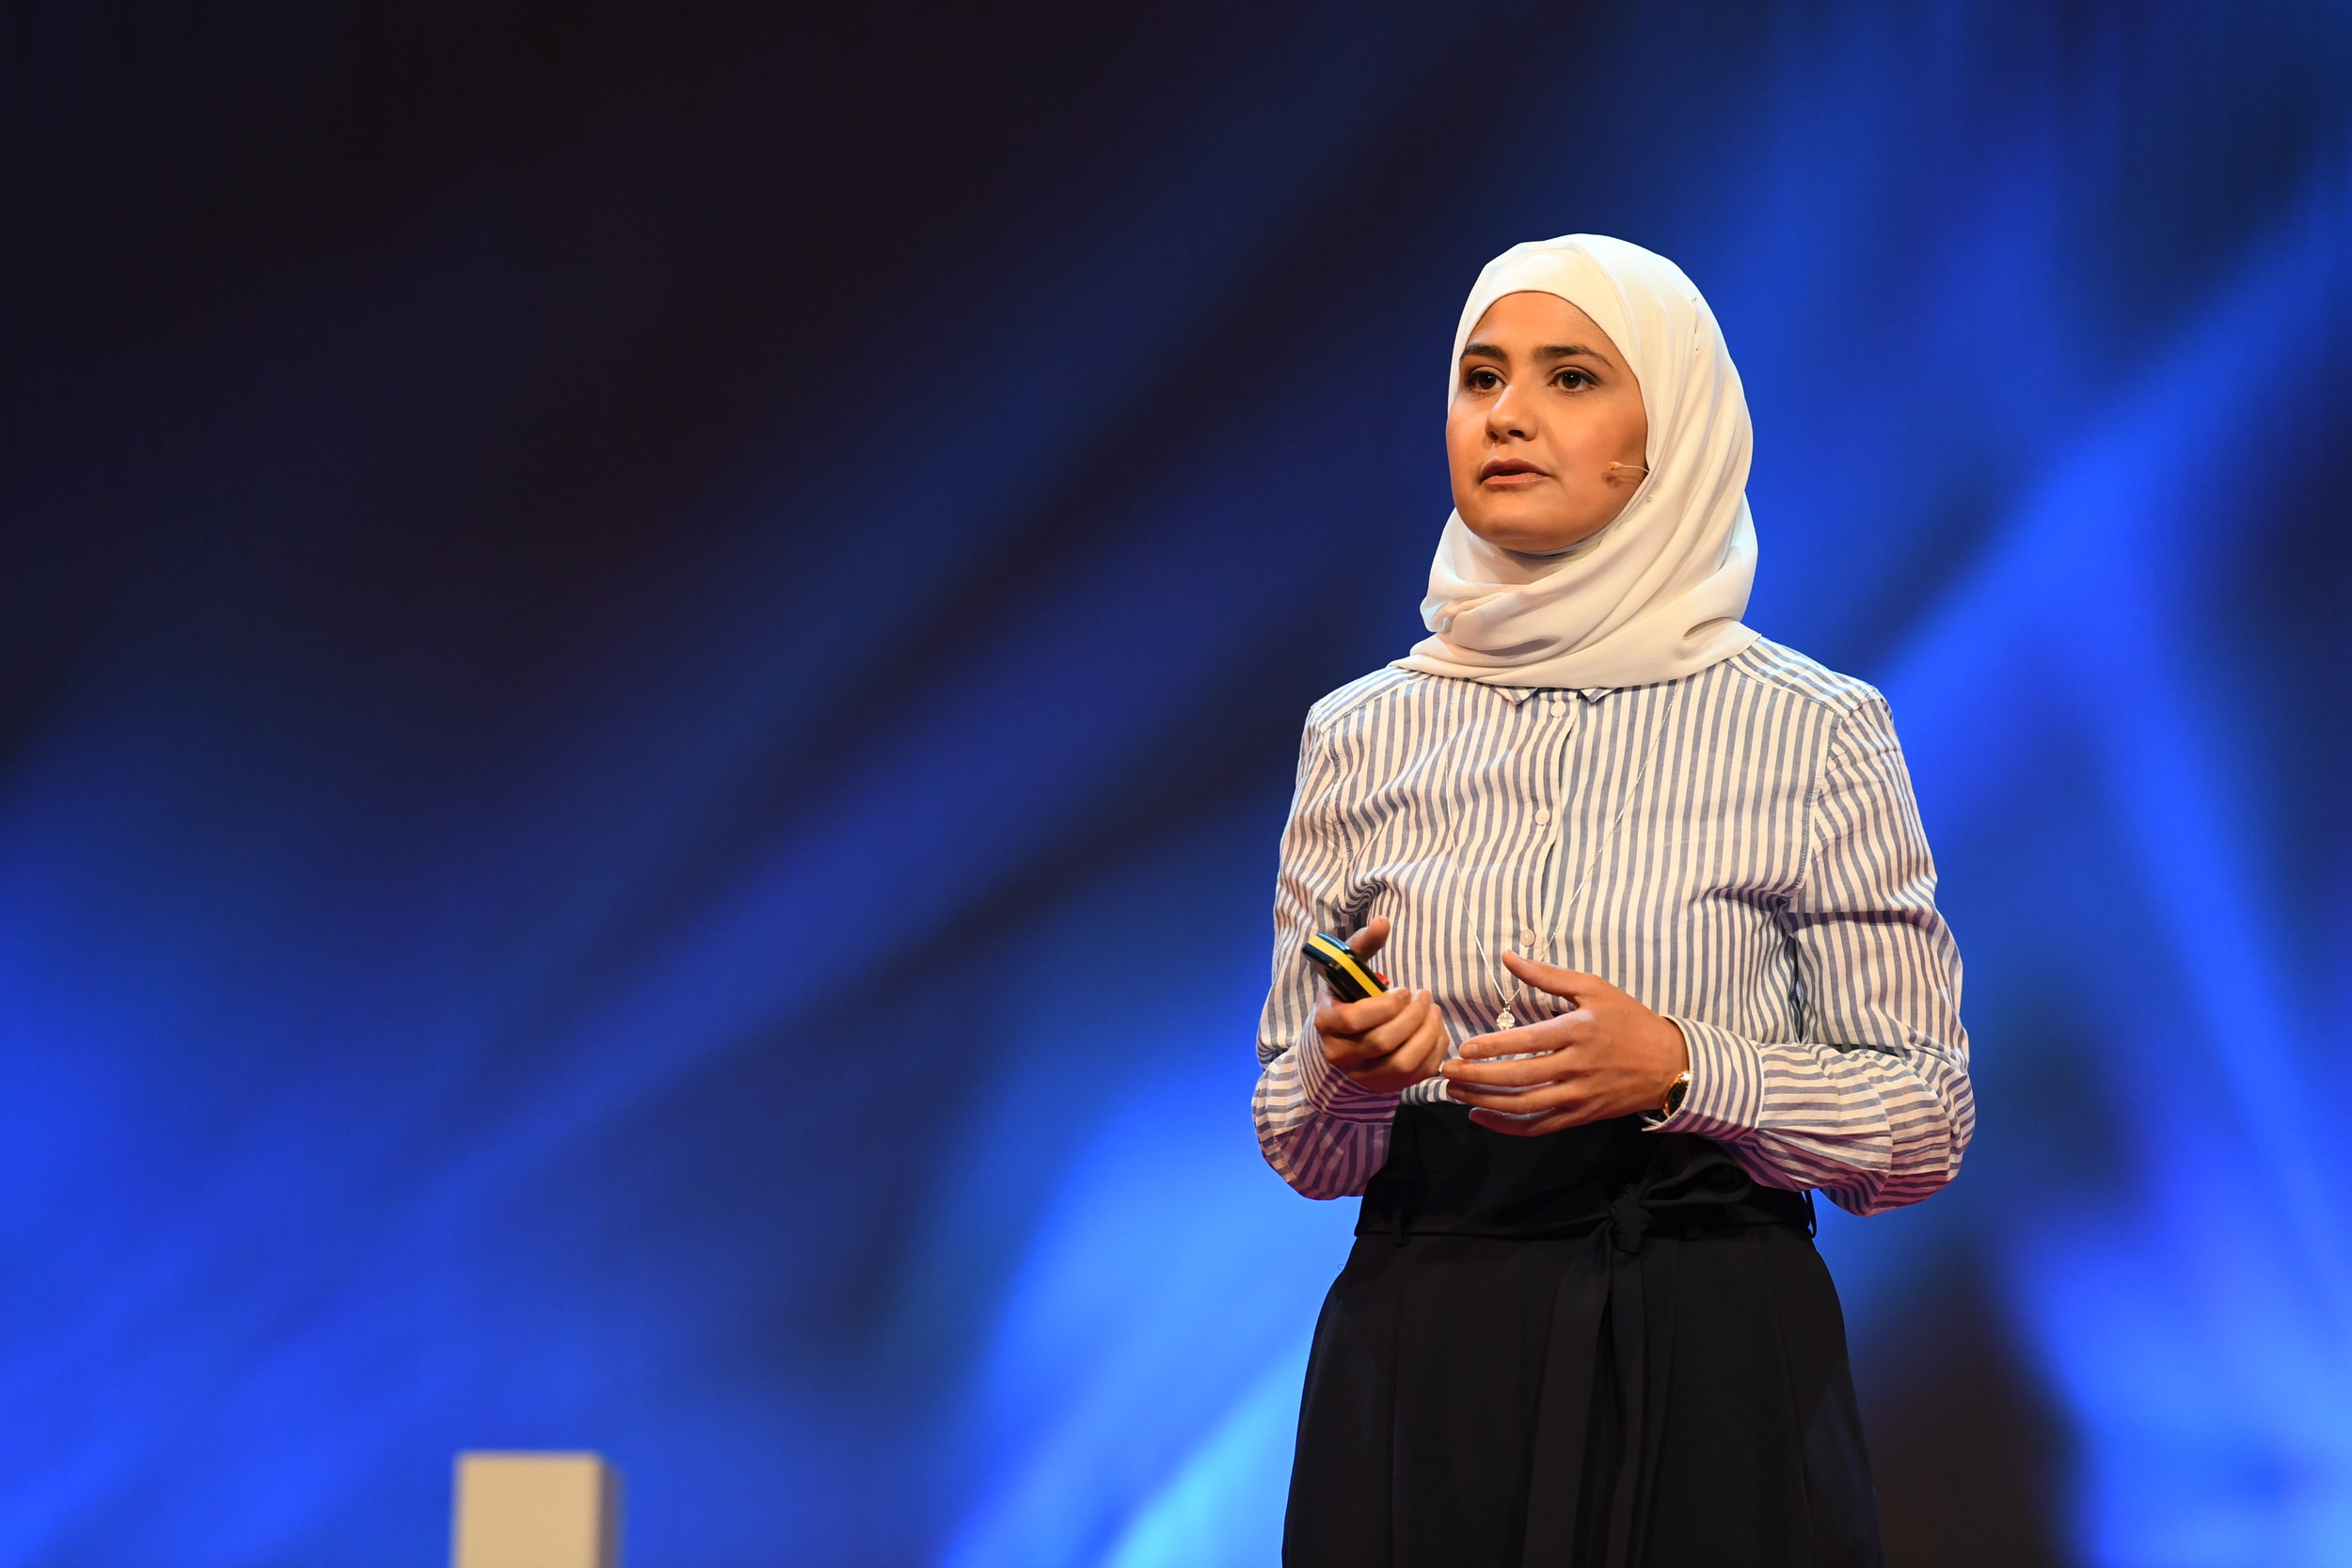 Rima Alaifari (30) is the youngest math professor at ETH Zurich. She talked about how people label people.